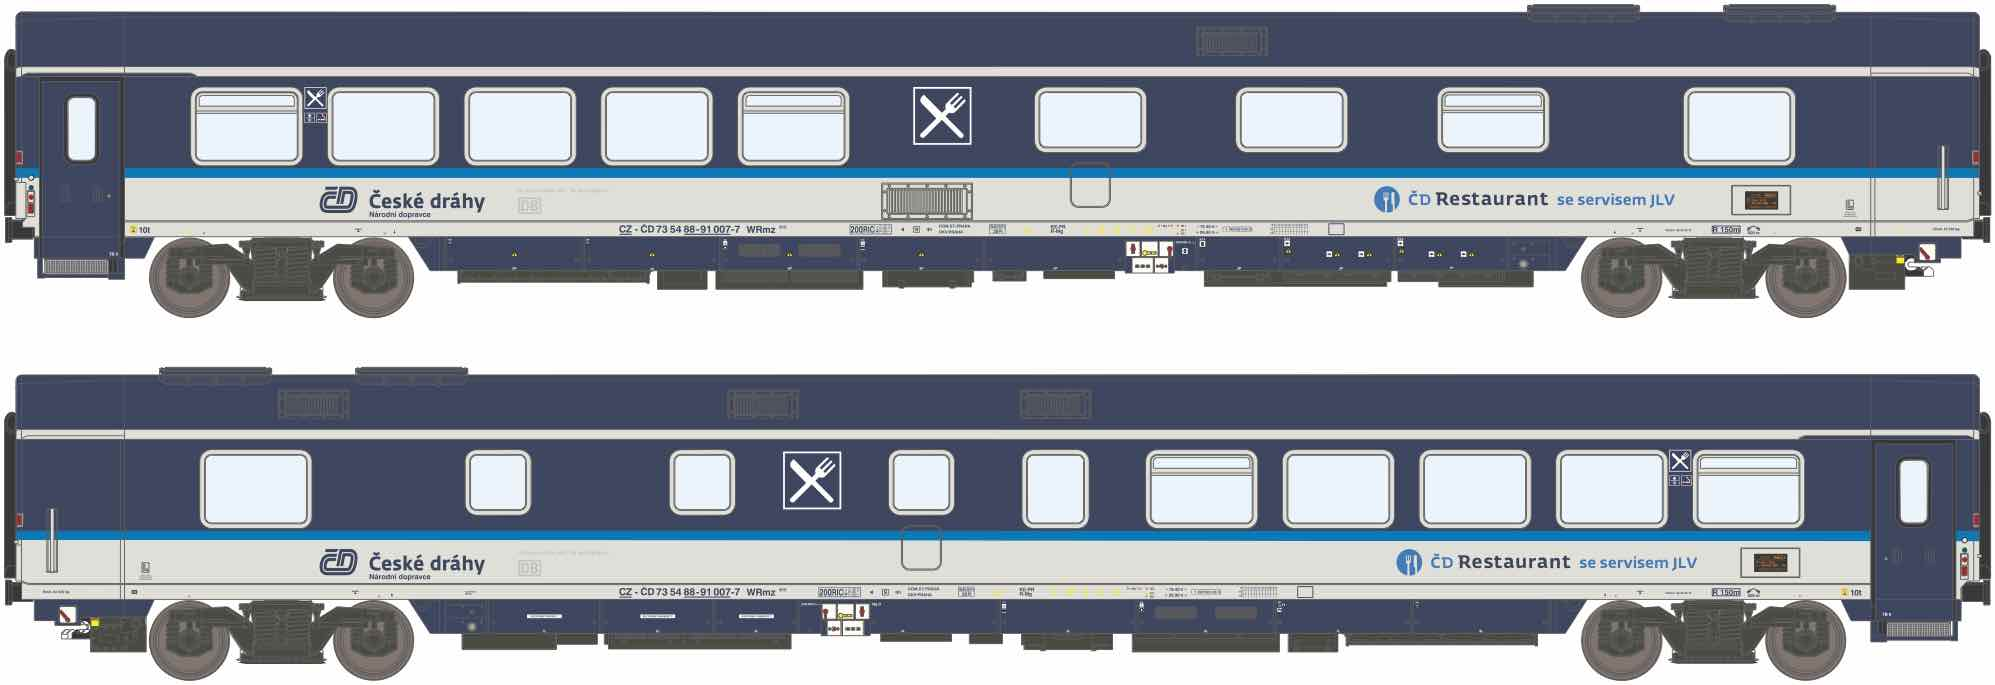 195471: EuroCity dining car, type WRmz 815 of the Czech Railways CD